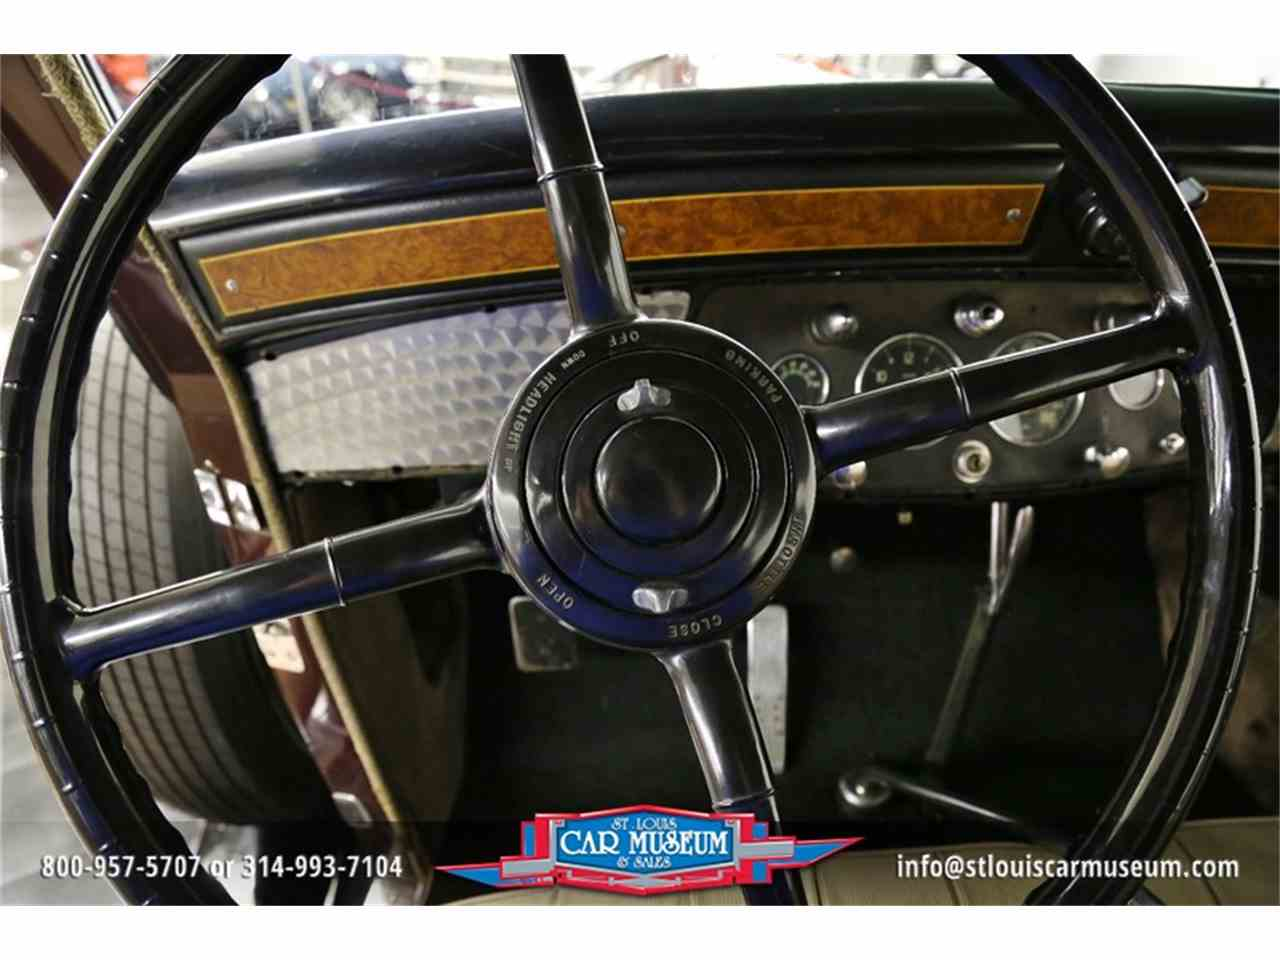 Large Picture of Classic '31 Cadillac V-16 Madam X Landau Sedan Offered by St. Louis Car Museum - JSU3